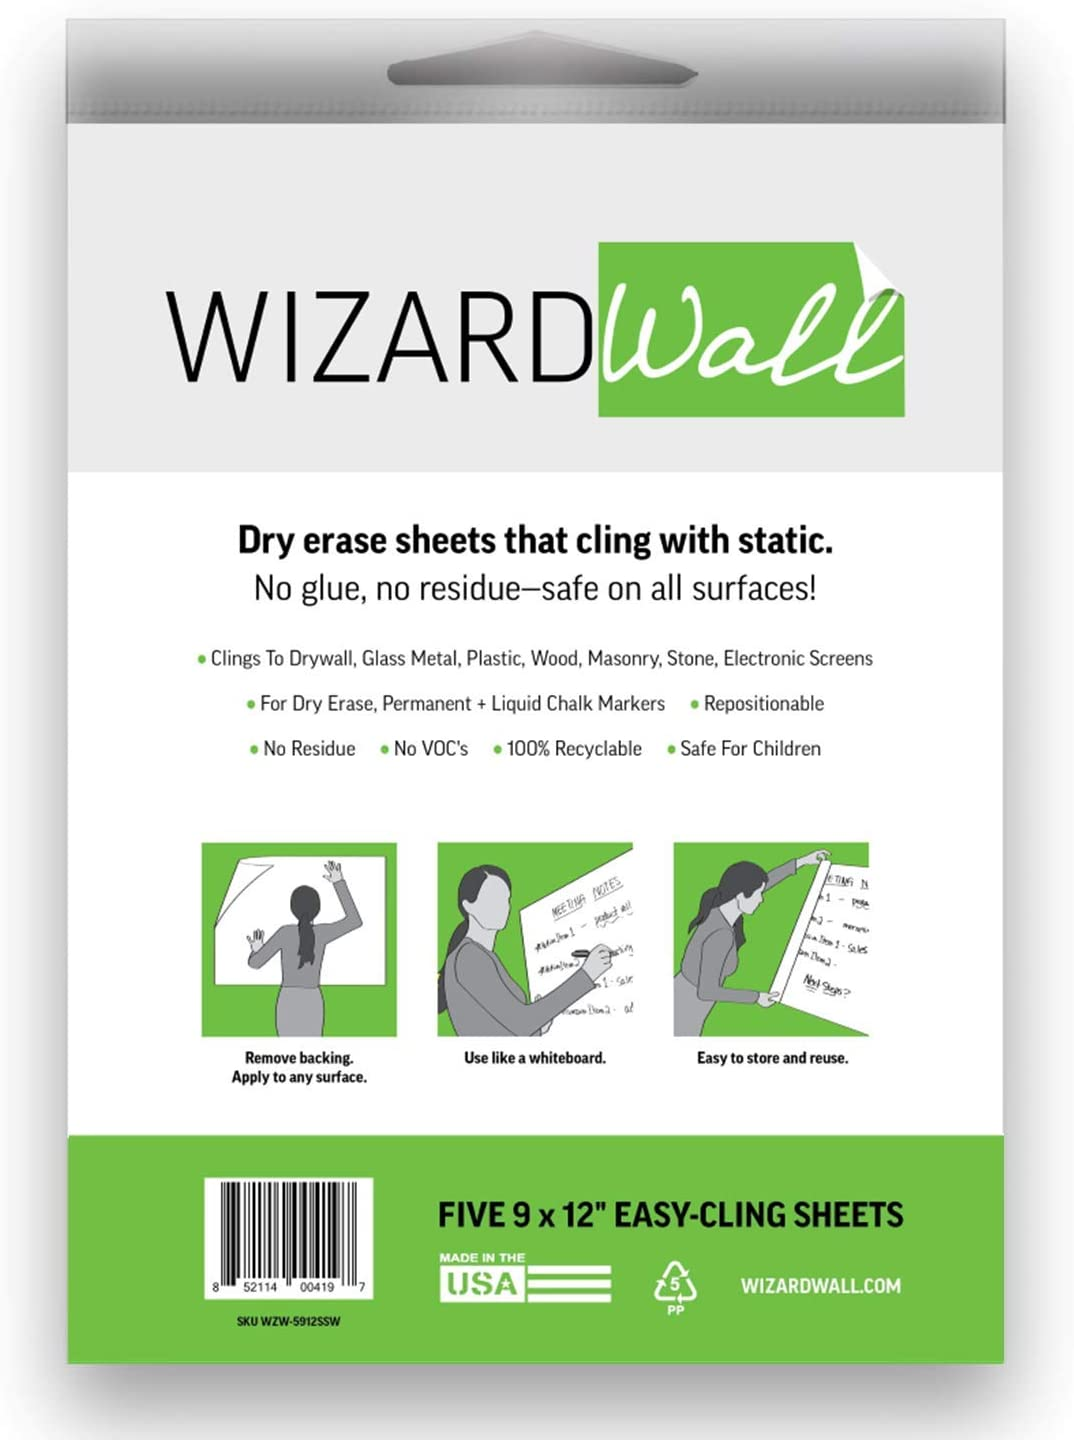 Wizard Wall Large Easy-Cling Sheets Su Repositionable Don't miss the Outlet ☆ Free Shipping campaign Dry Erase